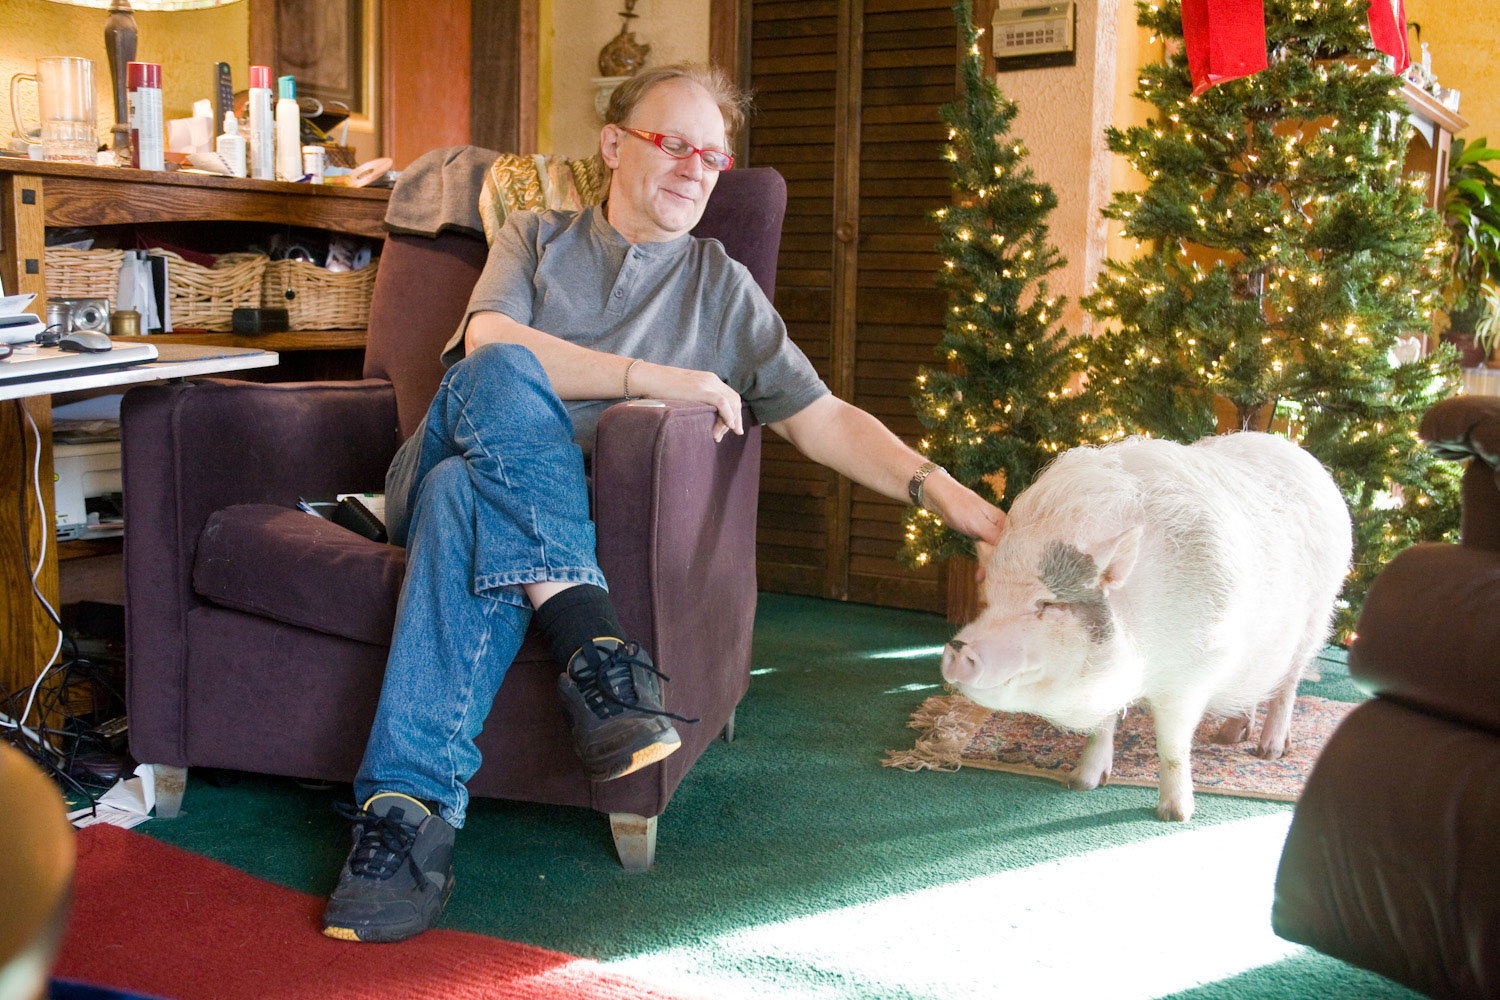 Martin Kasper and his pet pig Buddy Moon resting at home